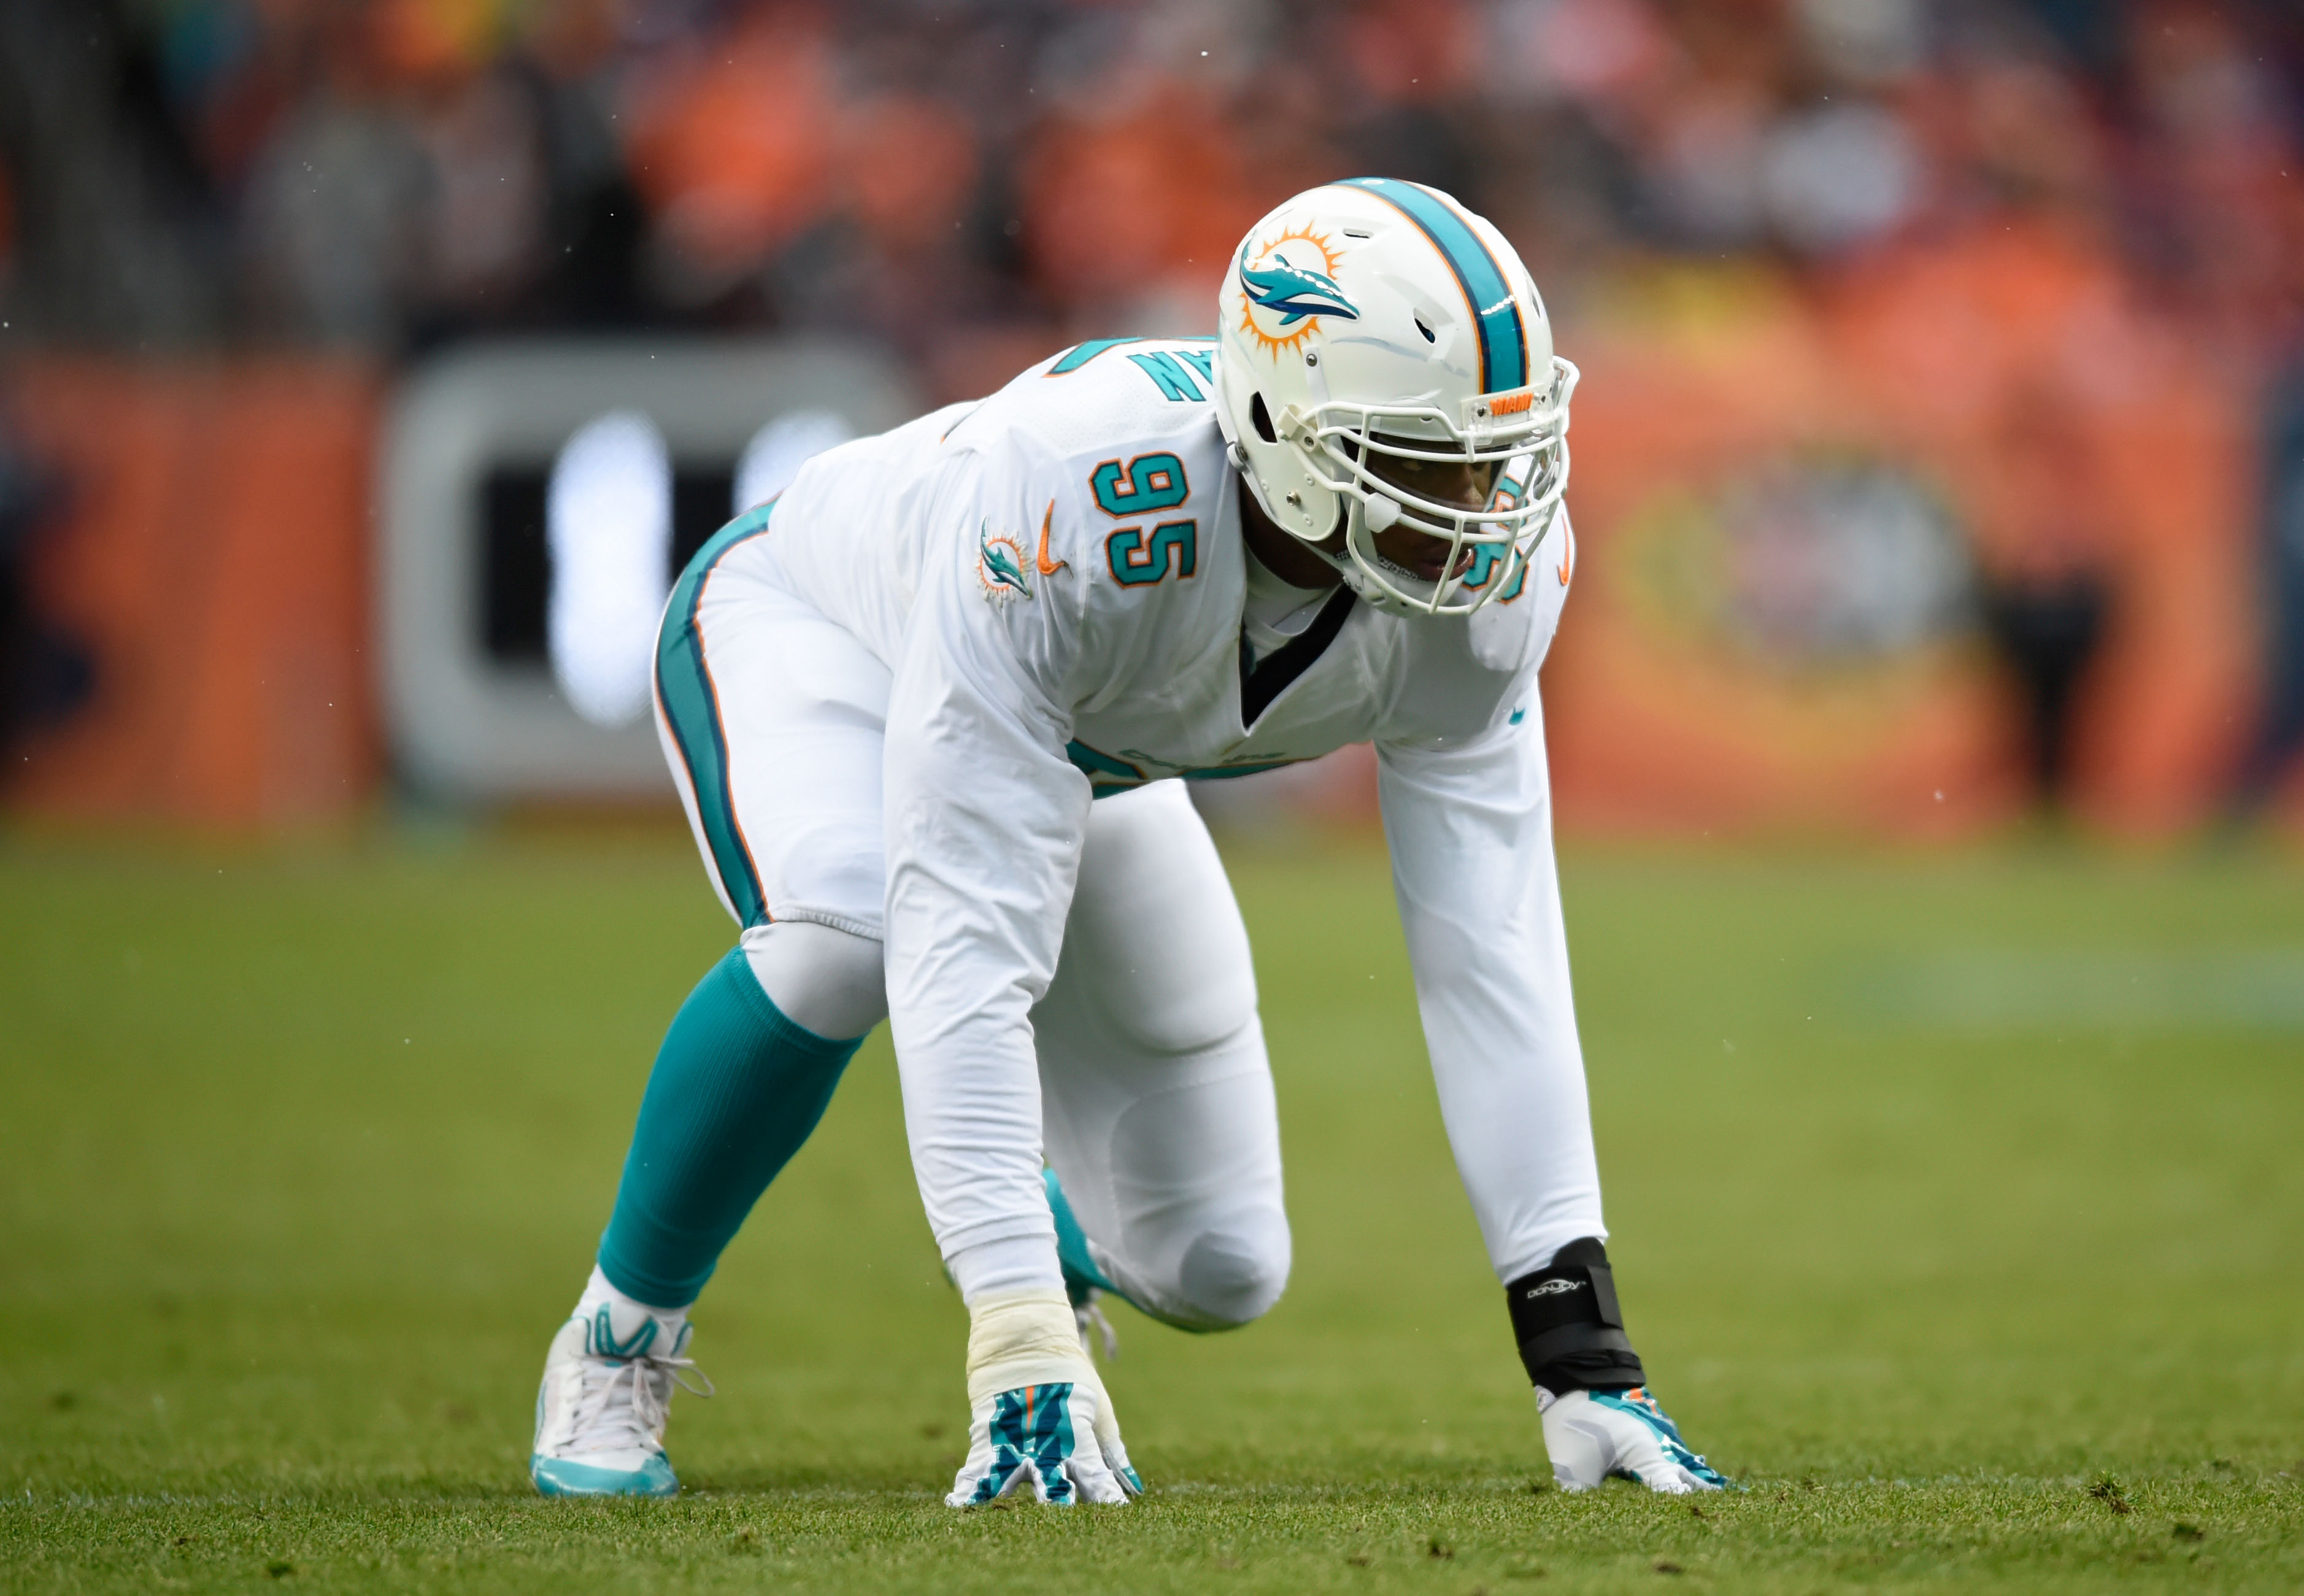 Dion Jordan granted conditional reinstatement by NFL after year-long suspension